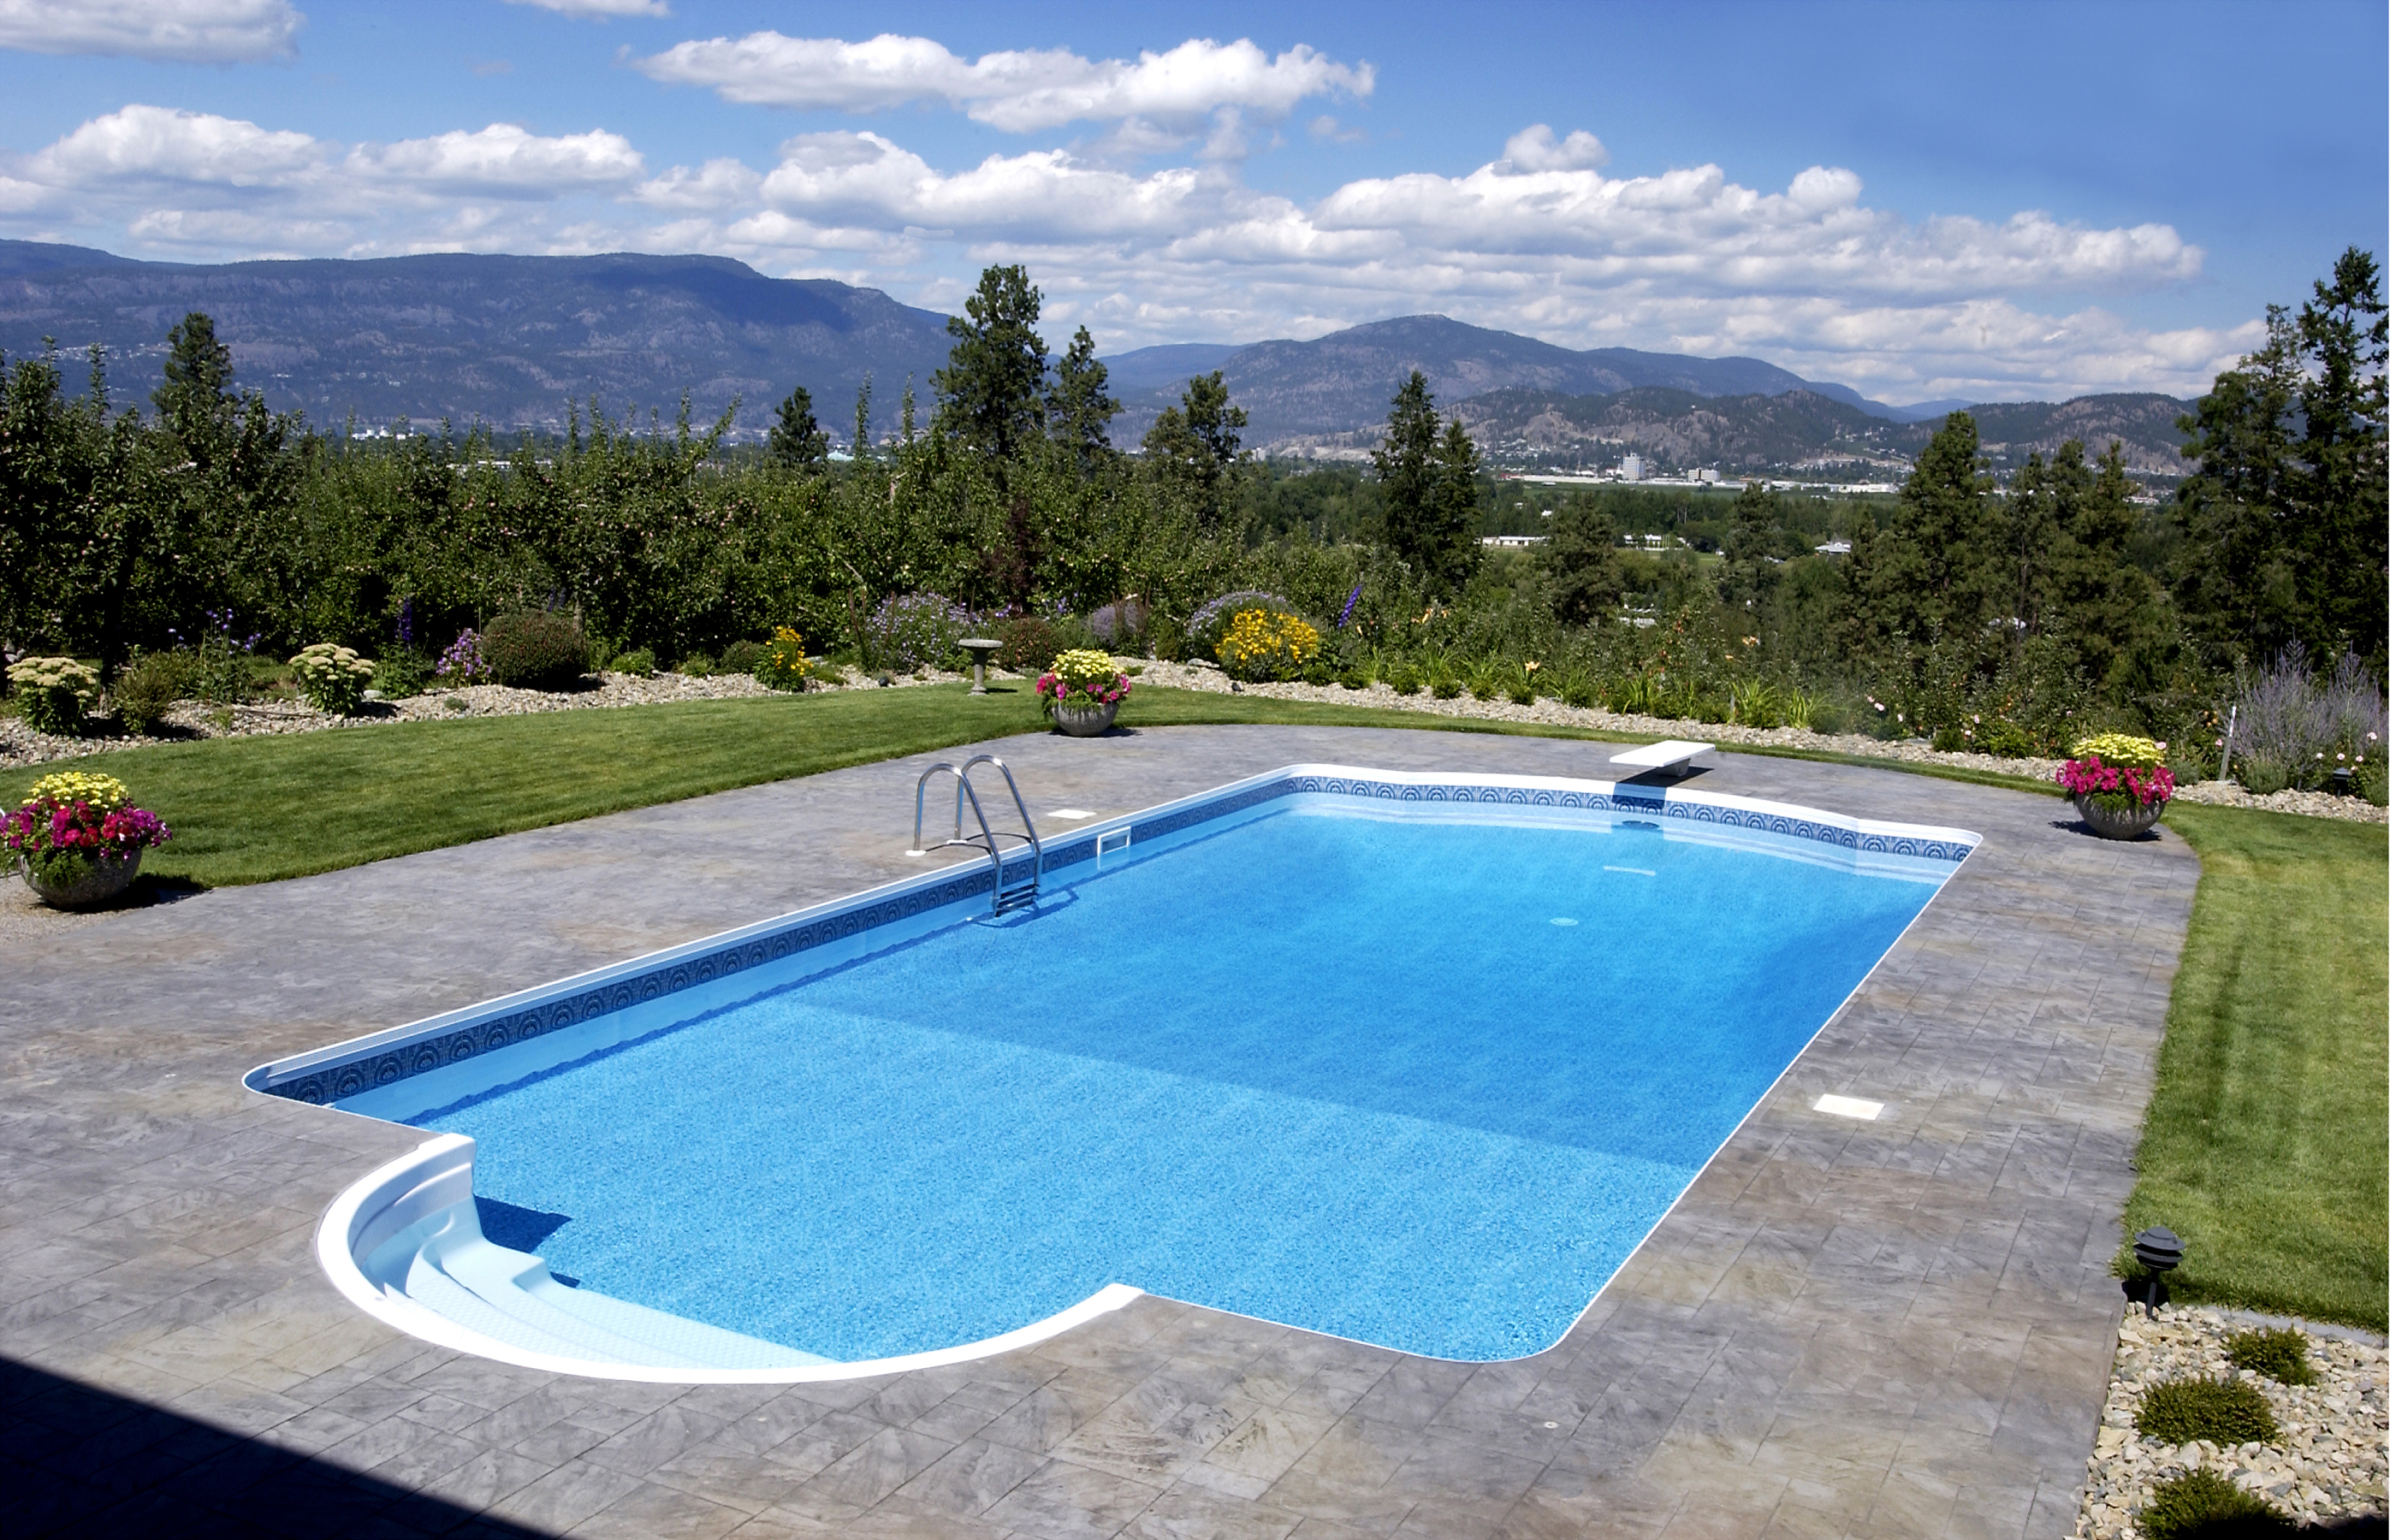 Swimming pool design for your beautiful yard homesfeed for Swimming pool design jobs